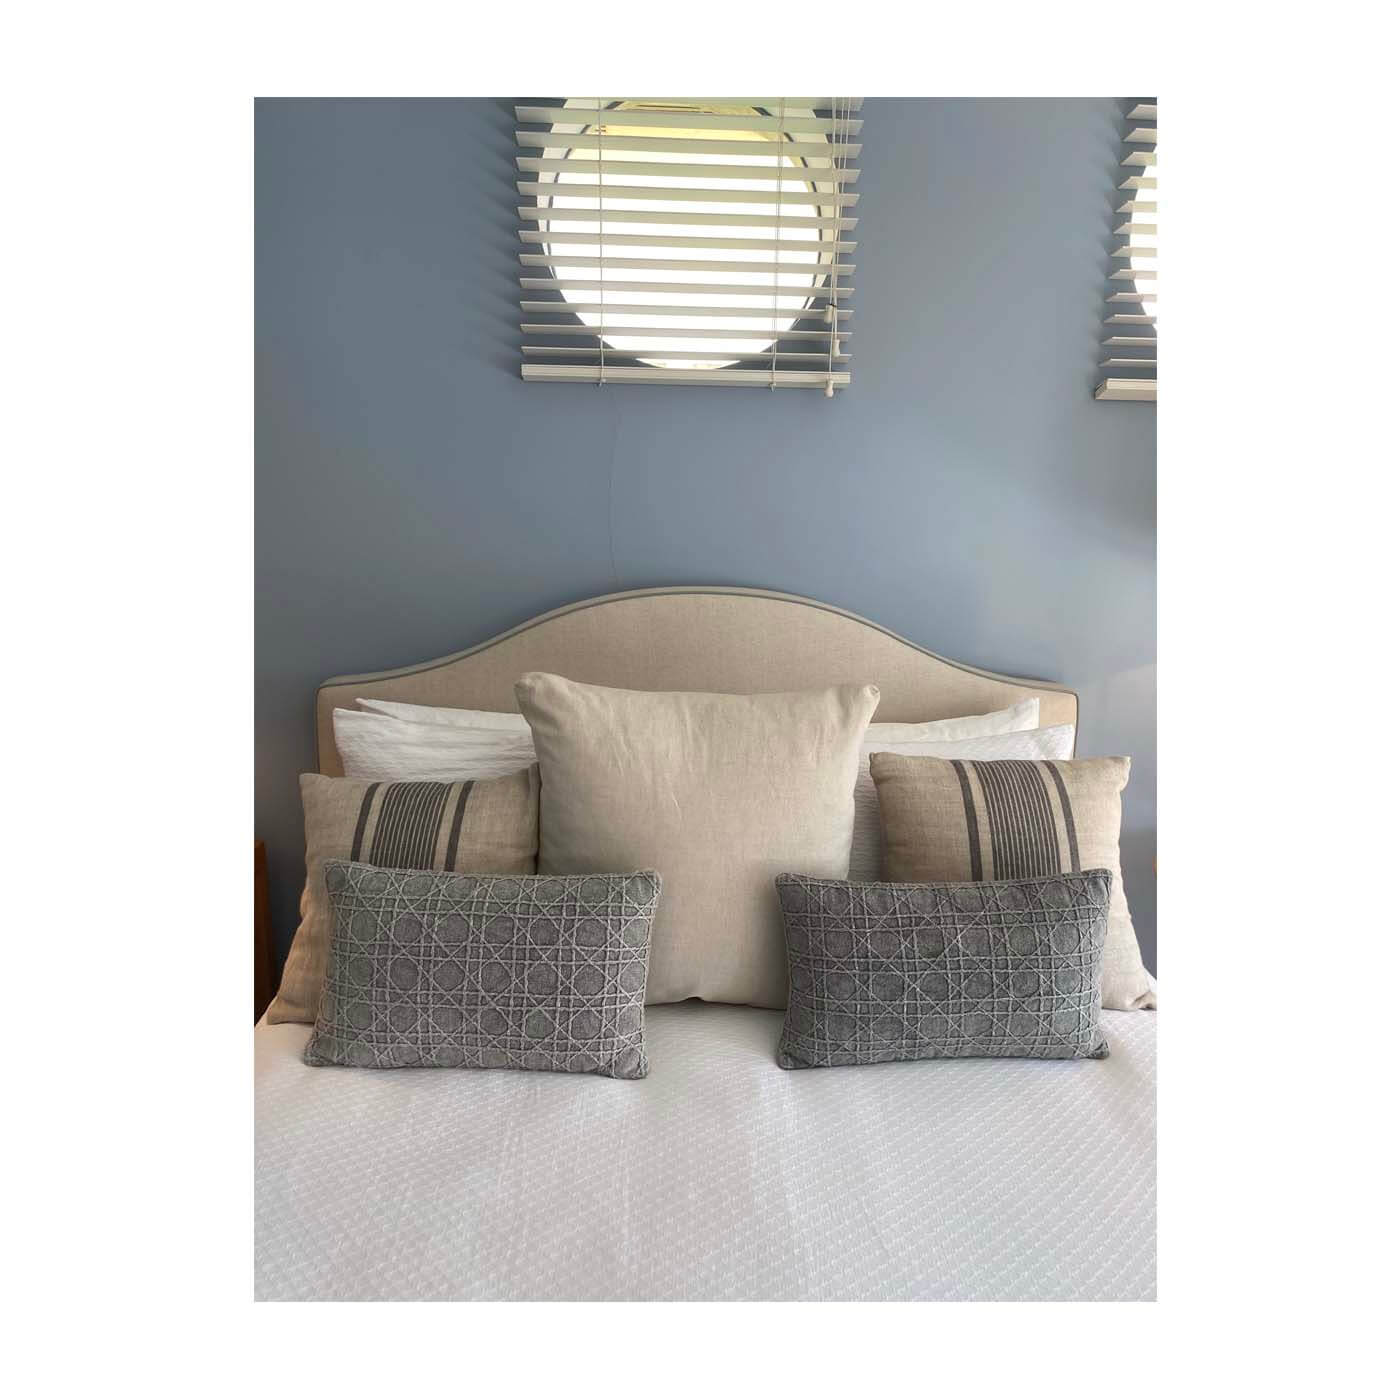 Queen upholstered bedhead in beige with grey piping